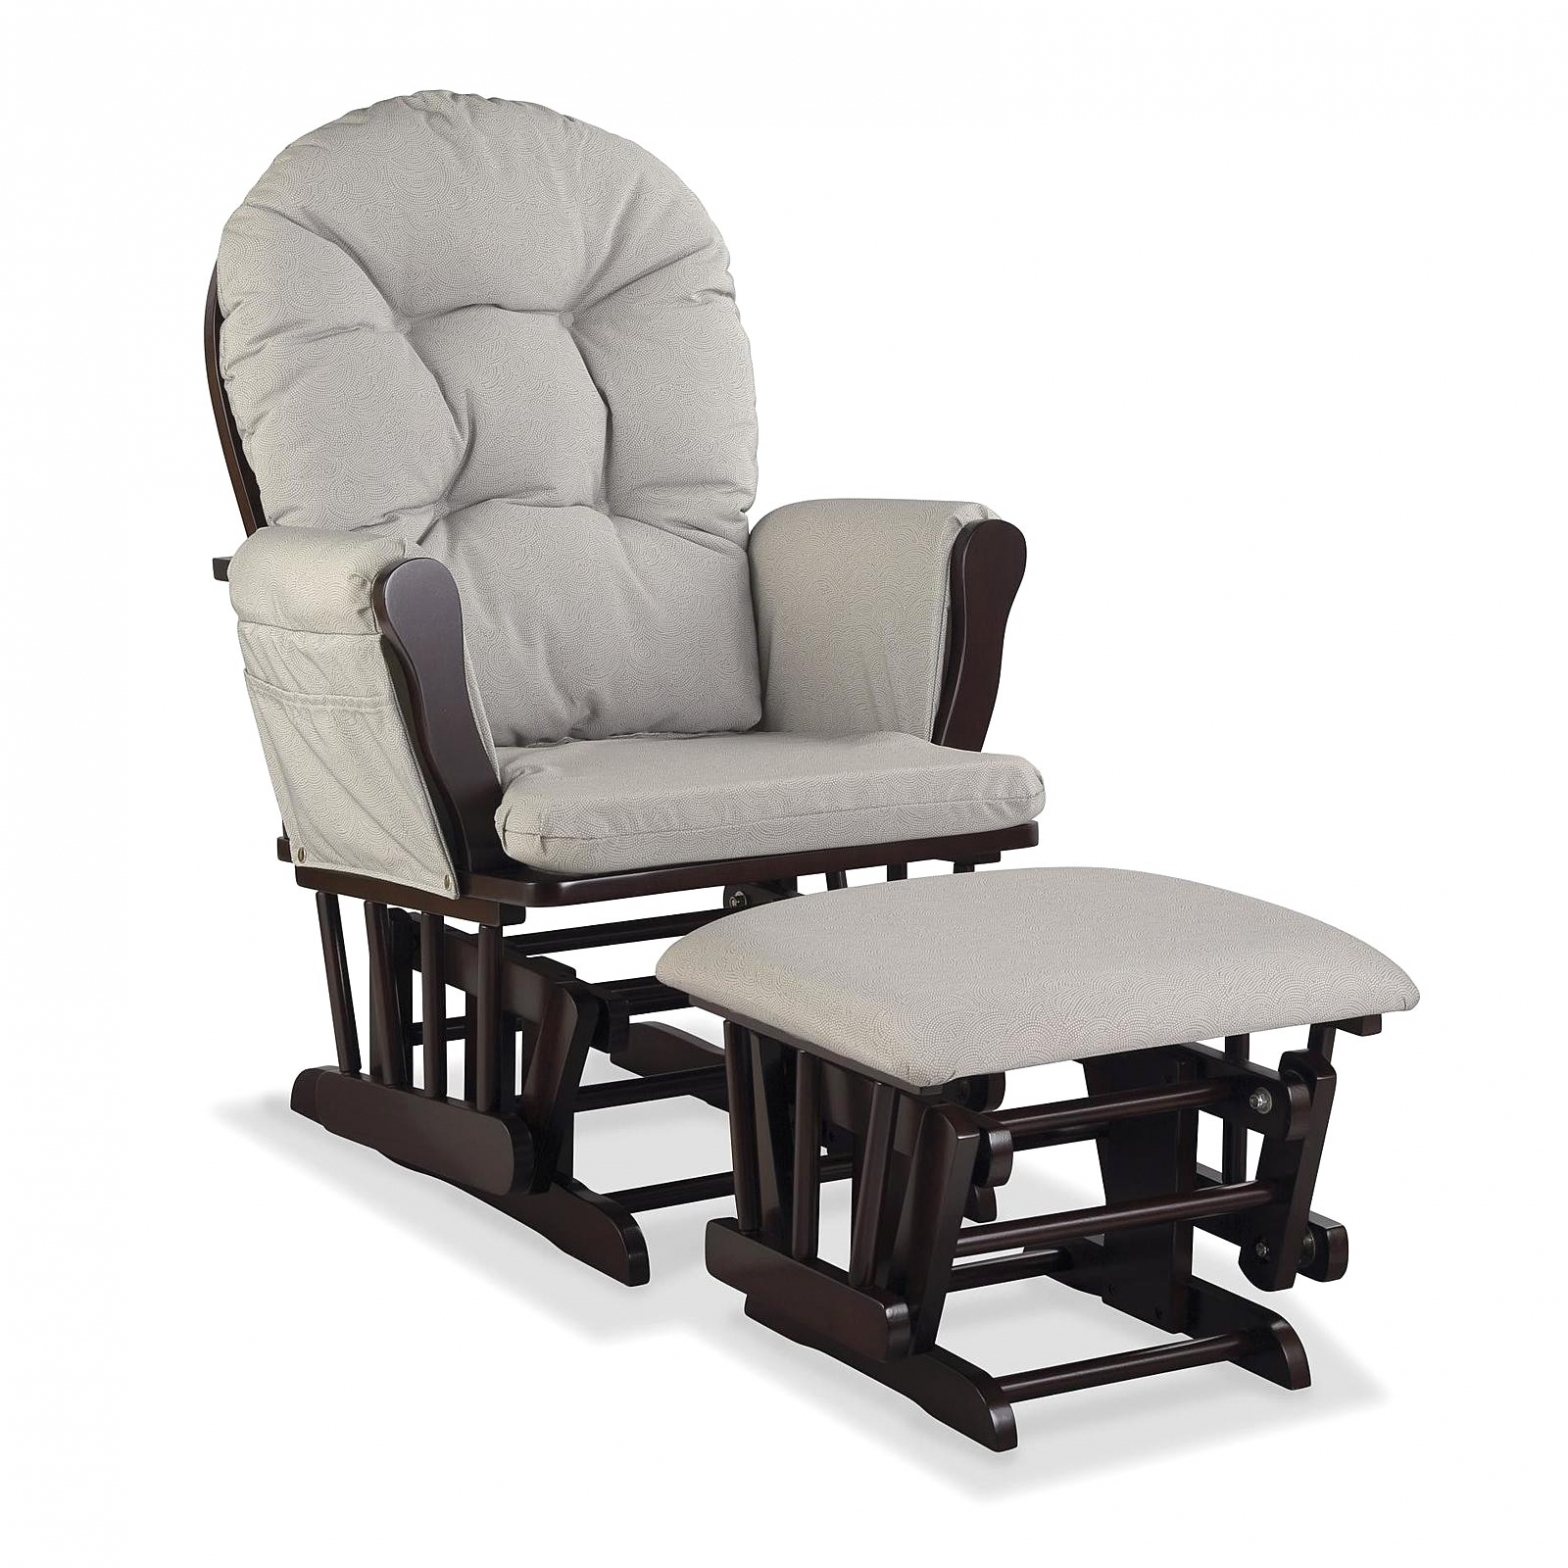 Furniture: Nursery Rocking Chair With Ottoman Glider Baby Rocker Pertaining To Rocking Chairs At Target (#7 of 15)